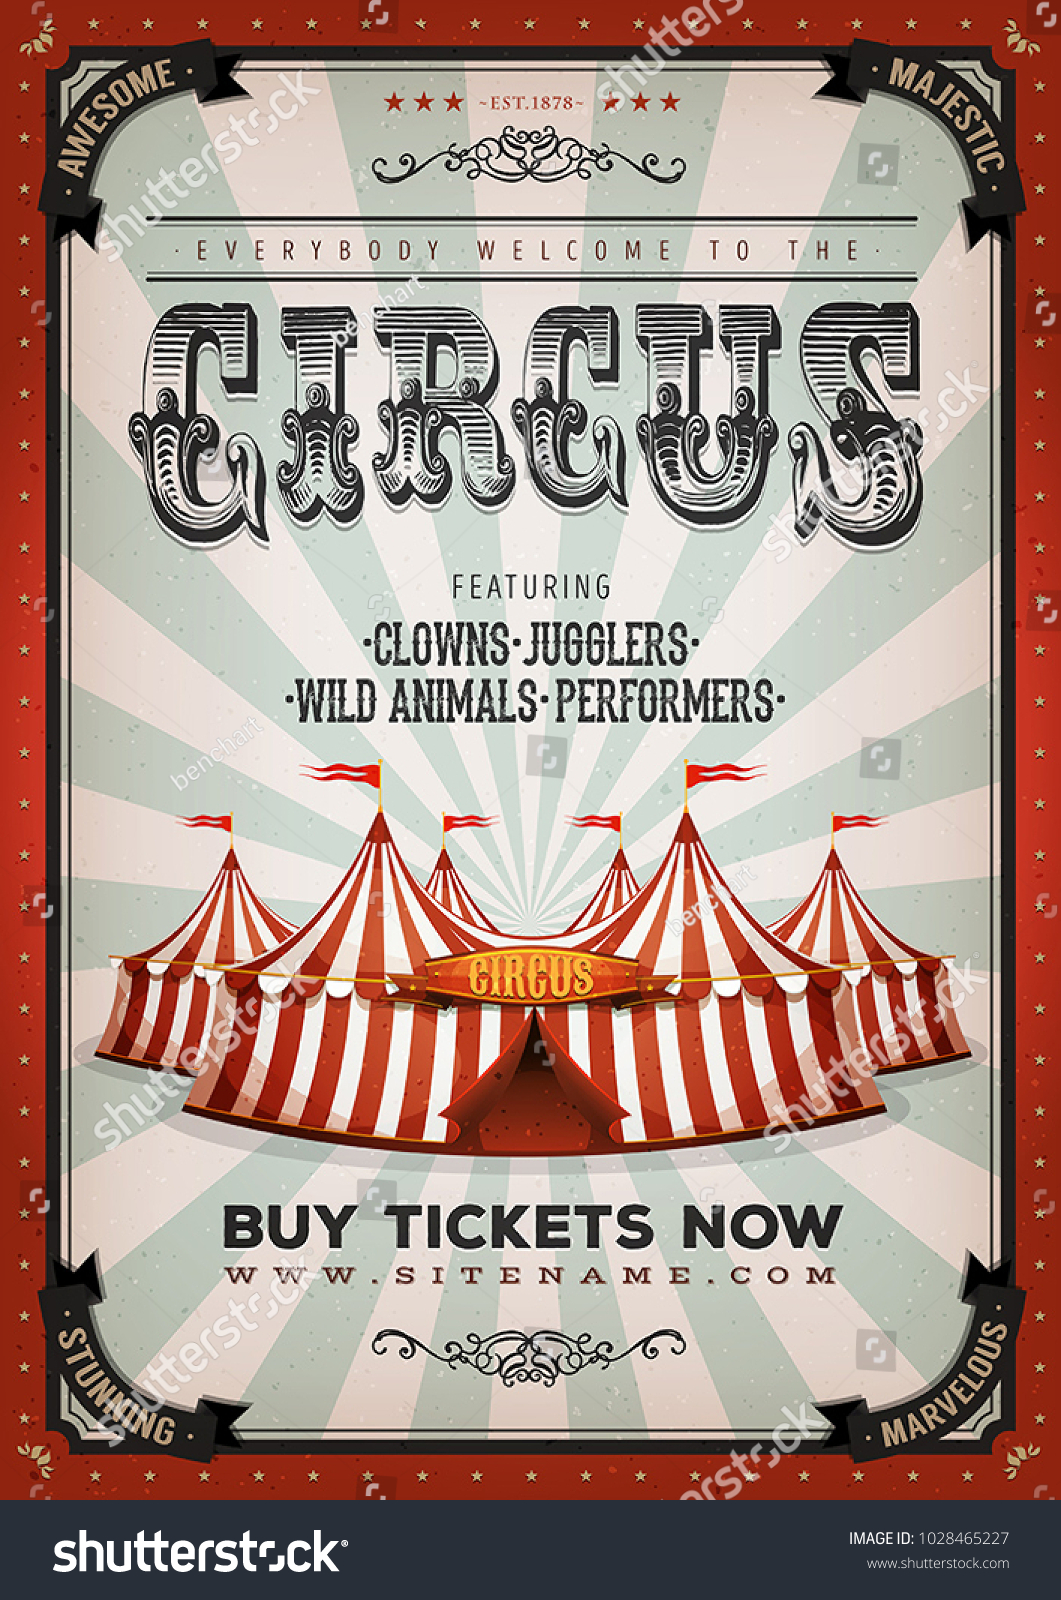 Vintage Circus Background Illustration Retro Vintage Stock ...